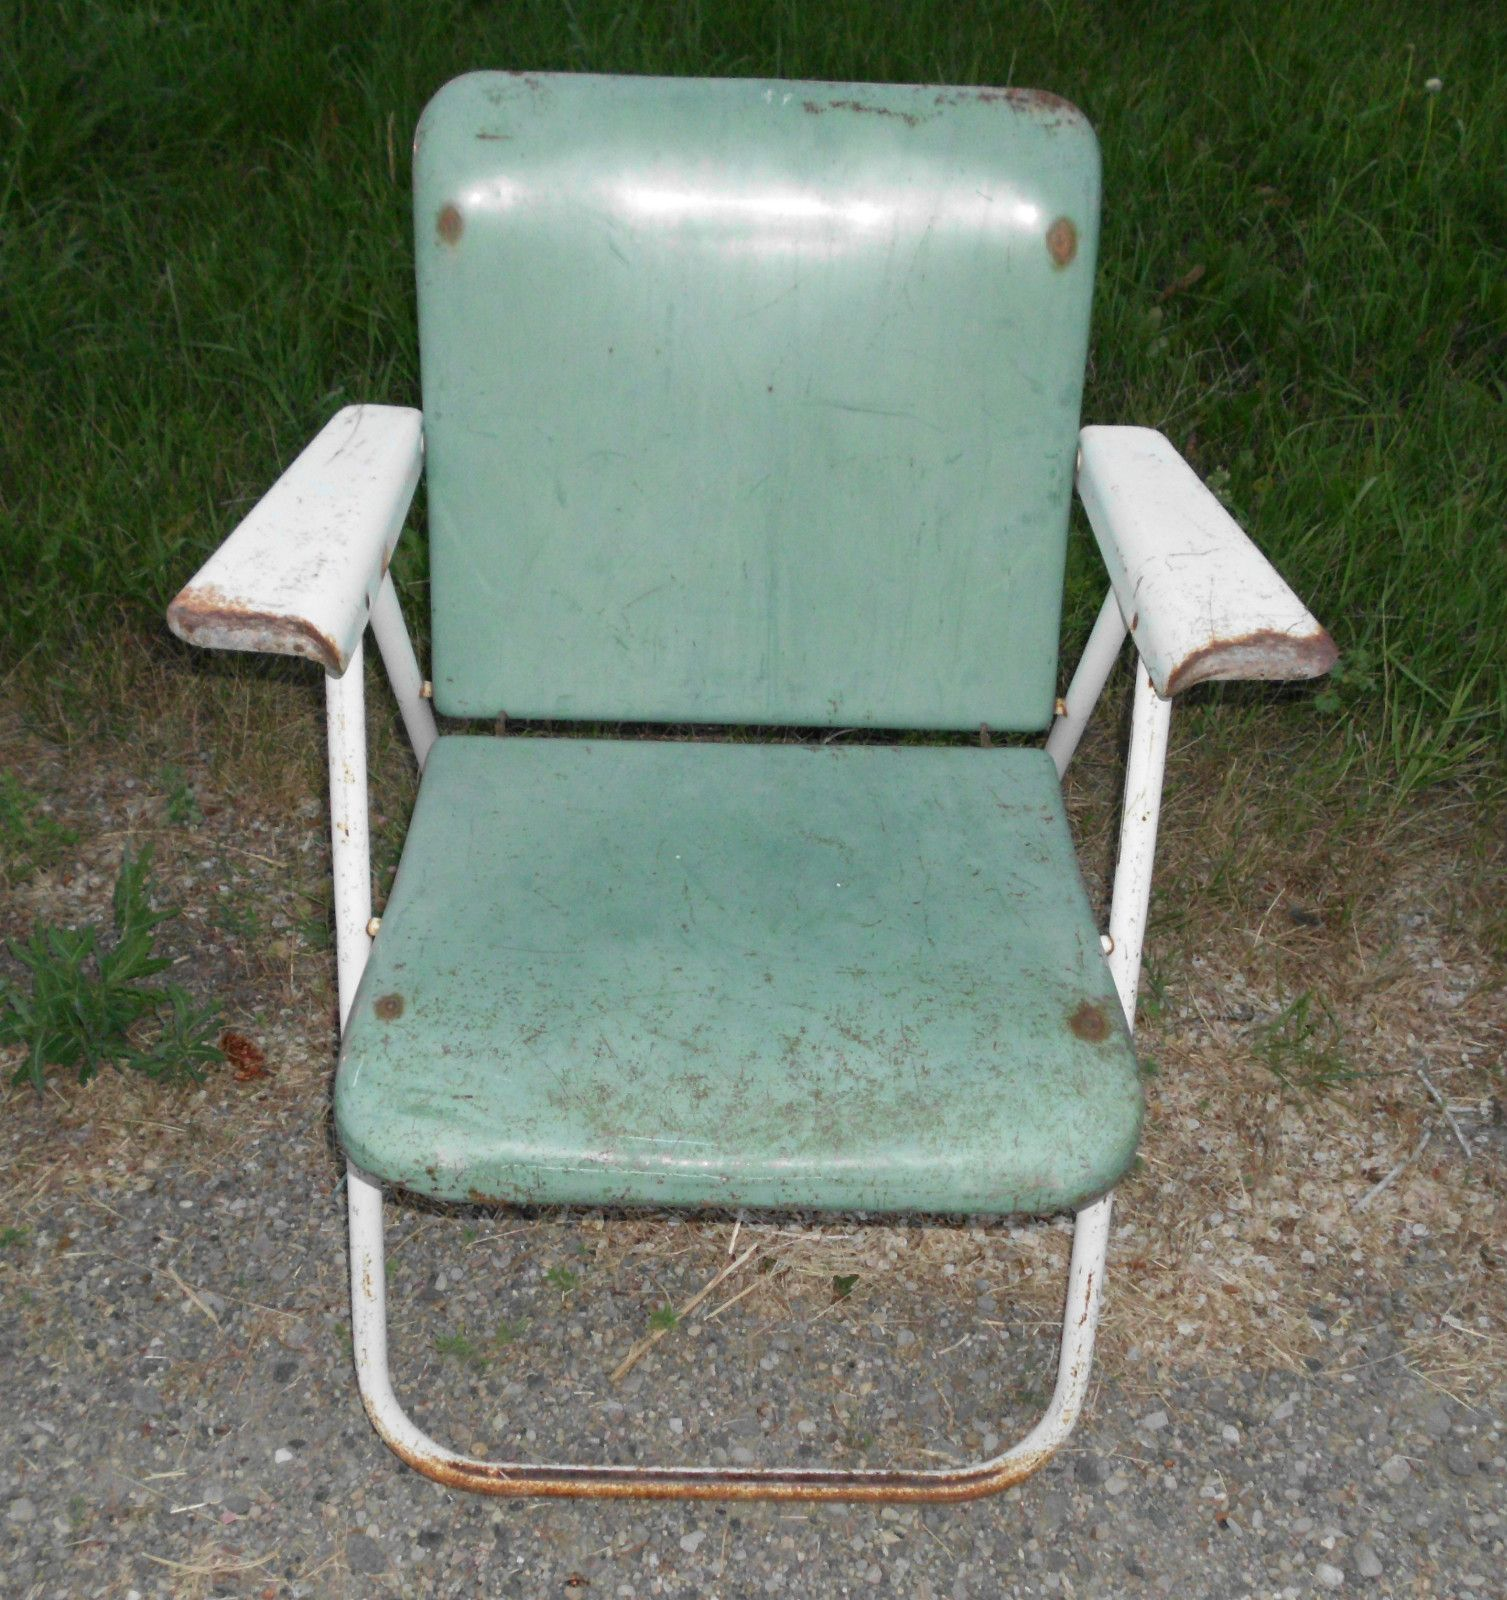 Antique Vintage Heavy Metal Folding Lawn Patio Chair Samsonite ? Green - Antique Vintage Heavy Metal Folding Lawn Patio Chair Samsonite